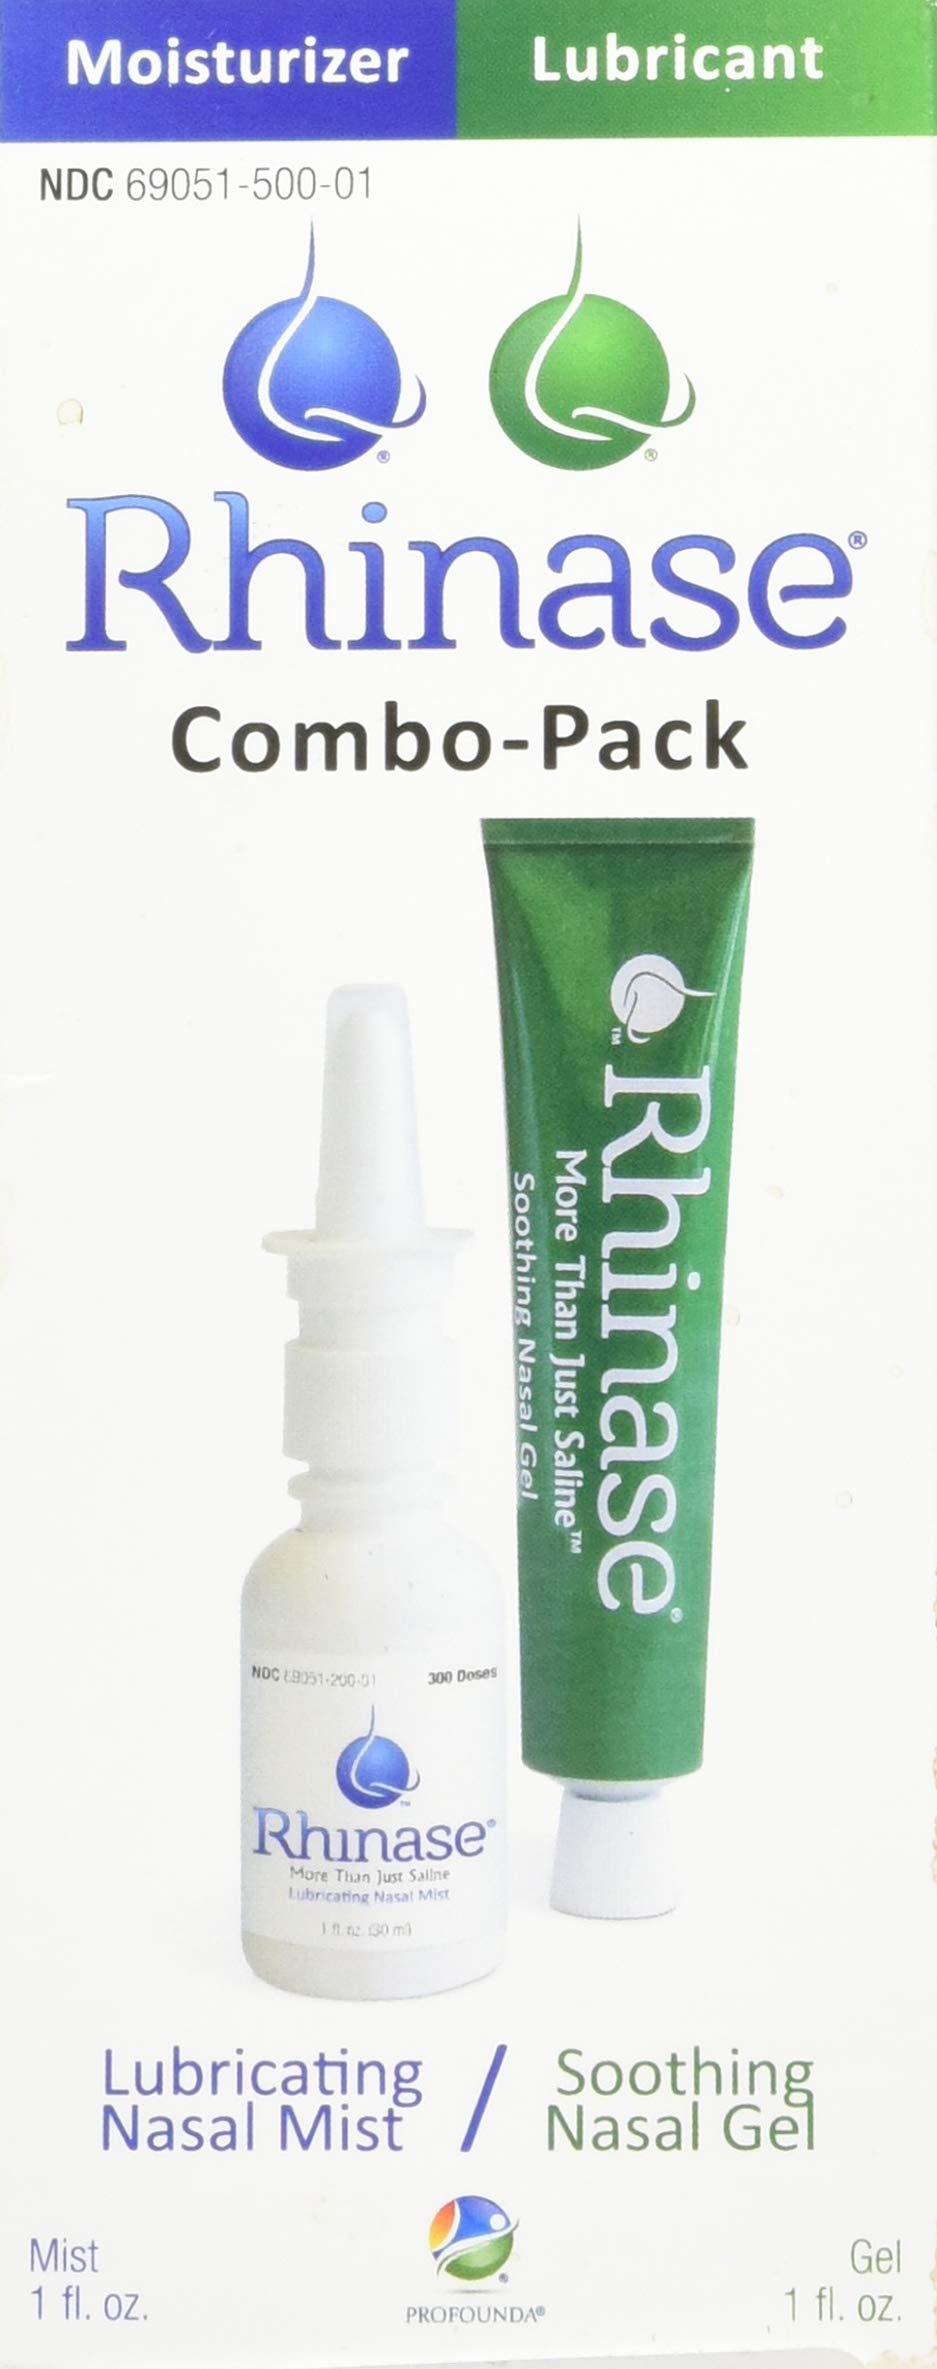 Rhinase (Nasal Gel 1 oz and Saline Nasal Spray 1 oz) Combo Pack for Dry Nose Sinus, Allergy and to Prevent Nosebleeds Caused by Nasal Dryness by Rhinase